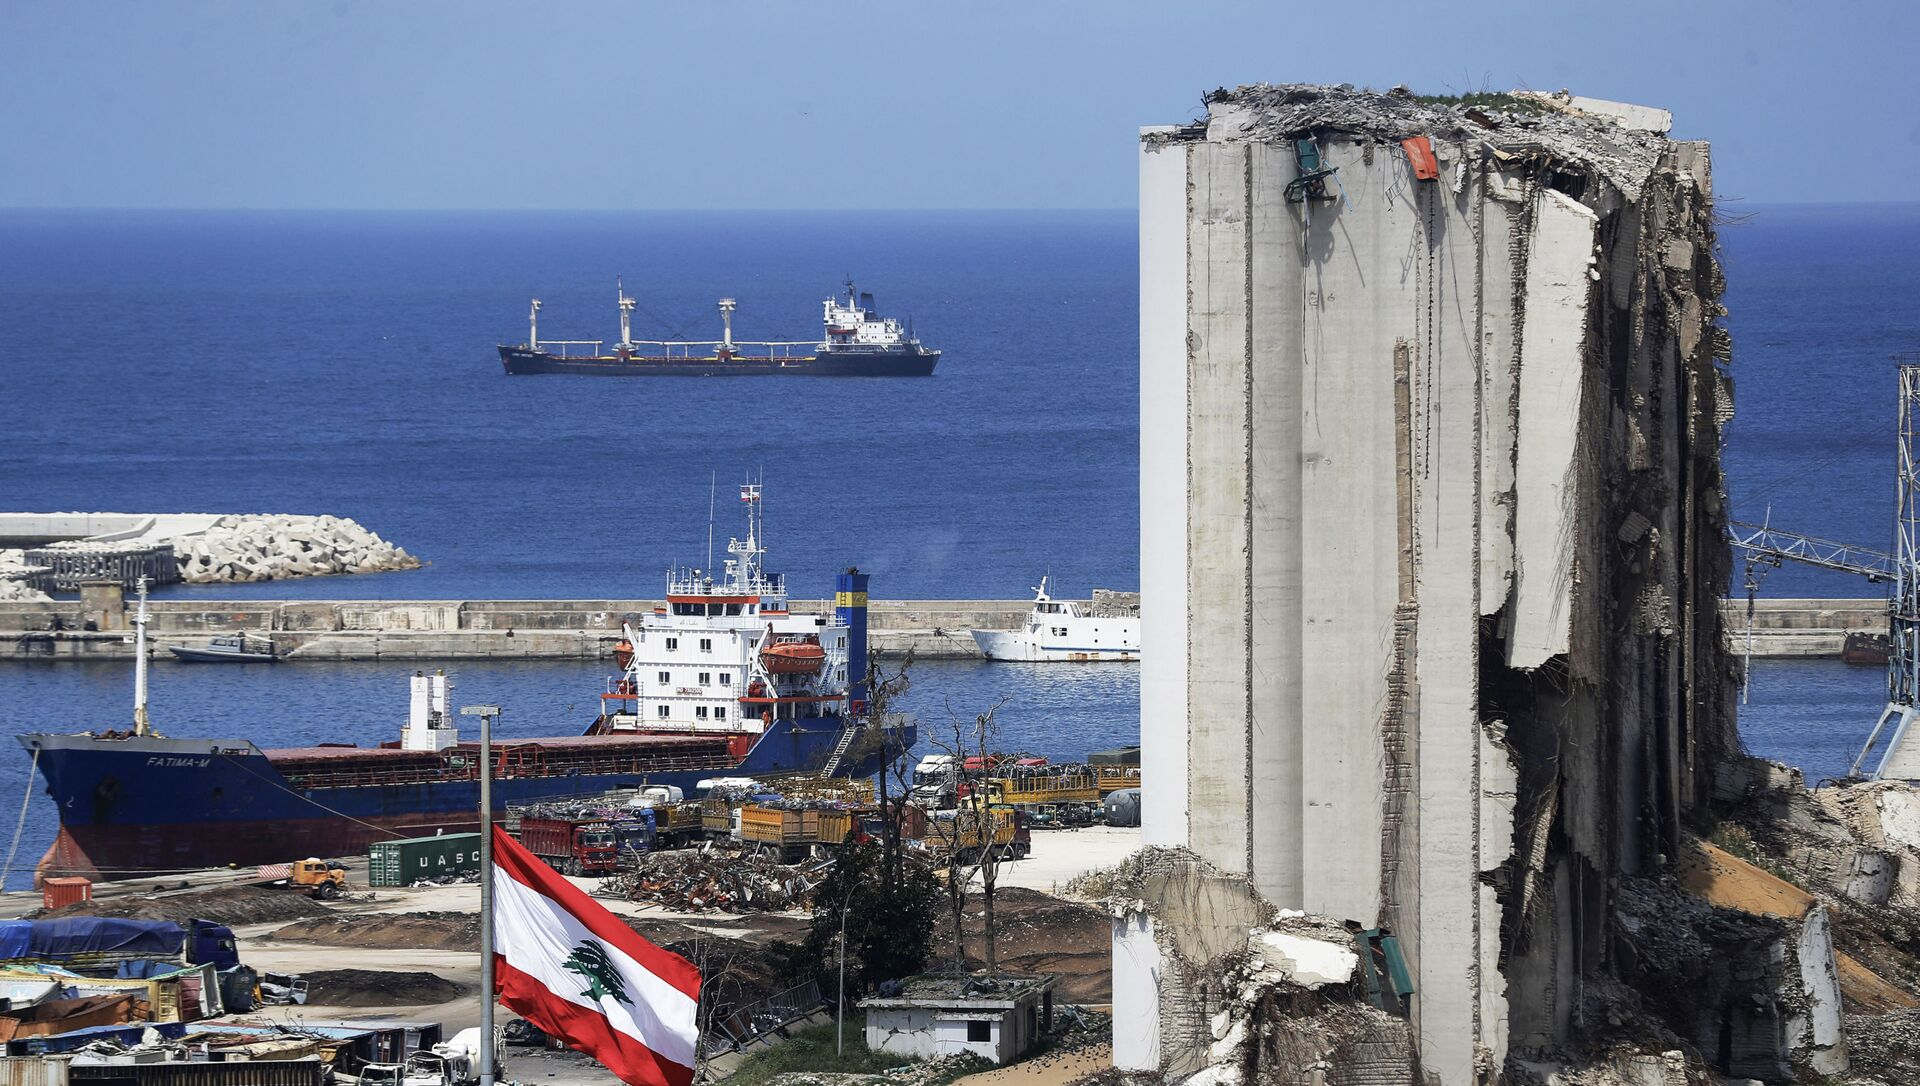 A picture shows a view of the damaged grain silos at the port of the Lebanese capital Beirut, on April 9, 2021, still reeling from the destruction due to a catastrophic blast in a harbour storage unit last August that killed more than 200 people and damaged swathes of the capital, with the Togo-flagged Fatima M bulk carrier ship moored nearby.  - Sputnik International, 1920, 02.08.2021